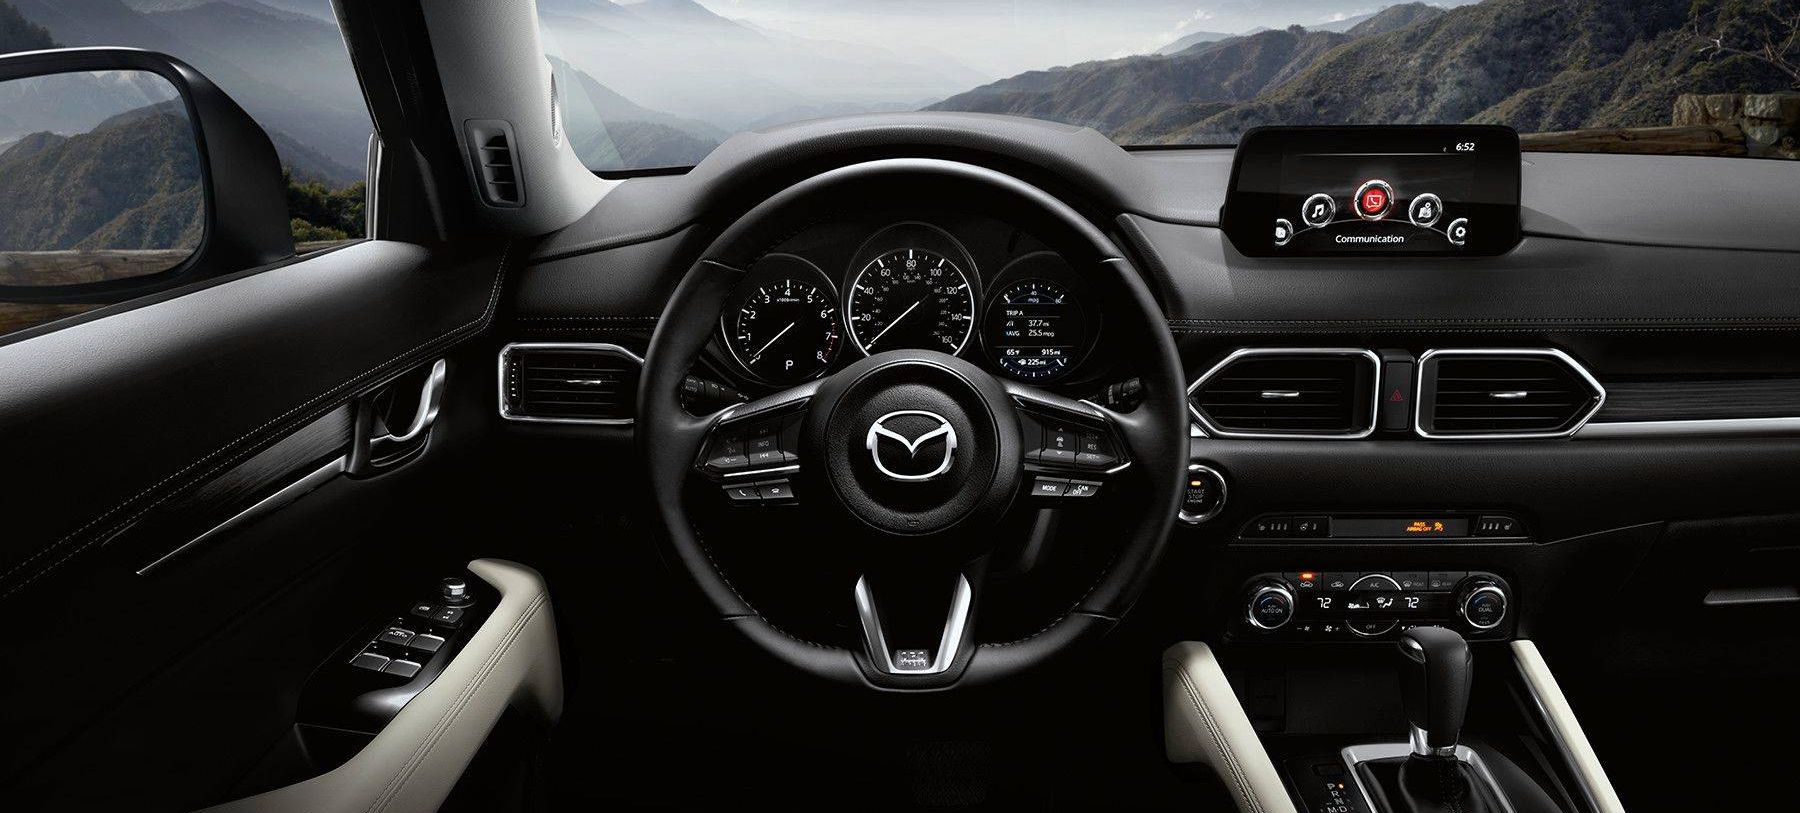 Great Features in the 2018 Mazda CX-5